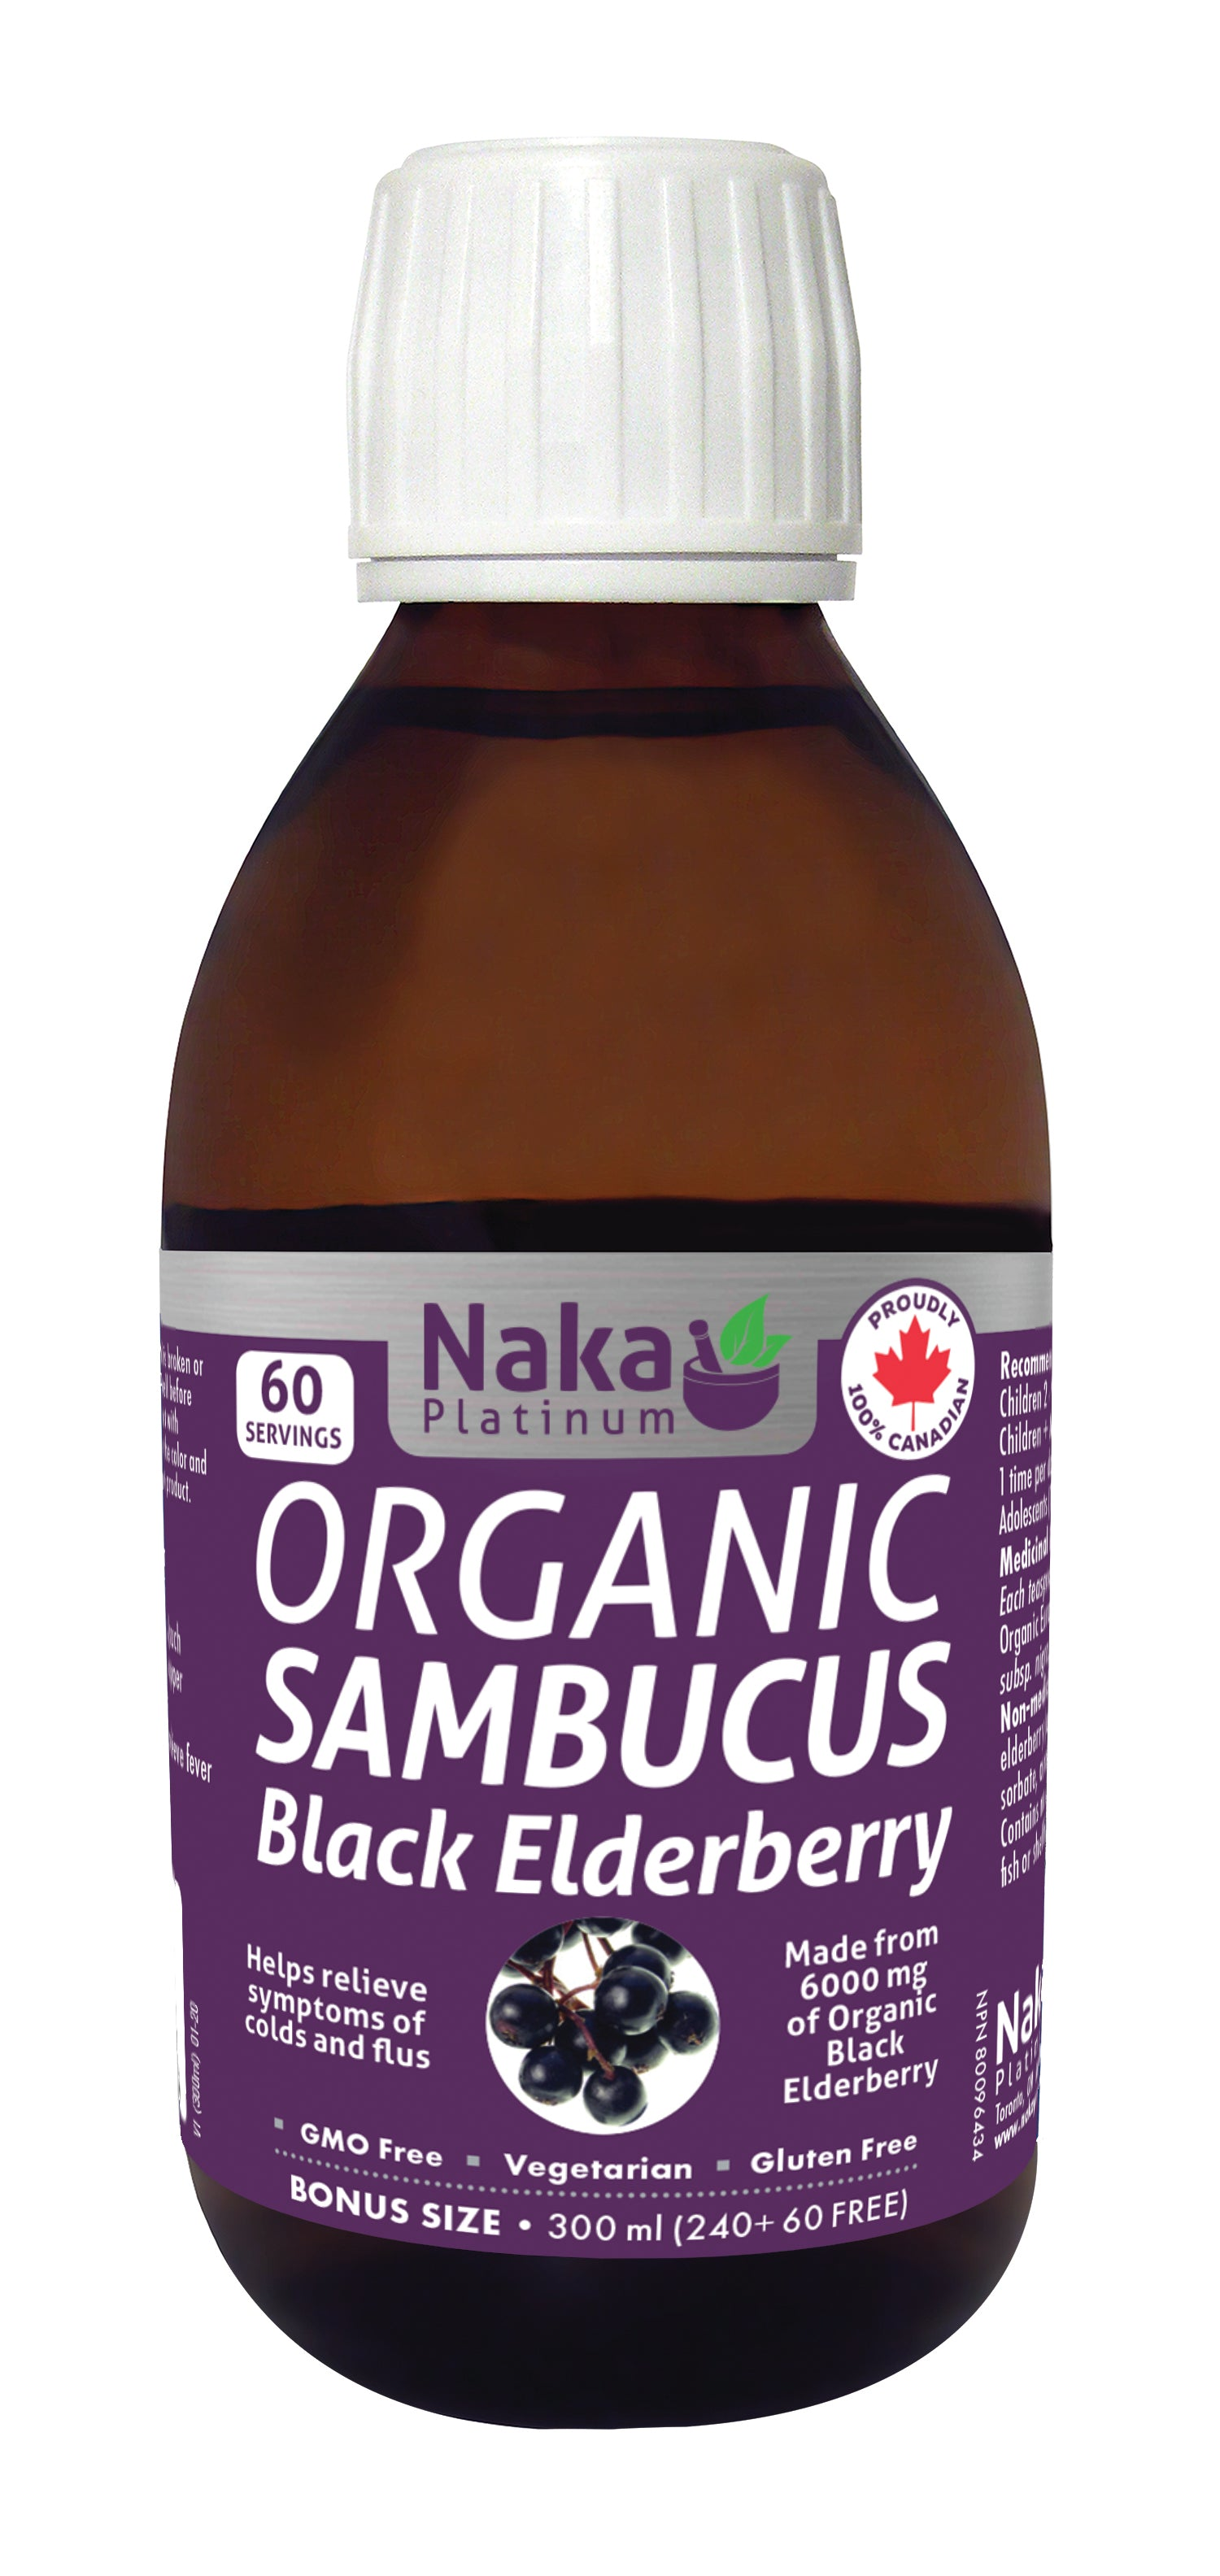 Naka Org Sambucus Elderberry 300ml